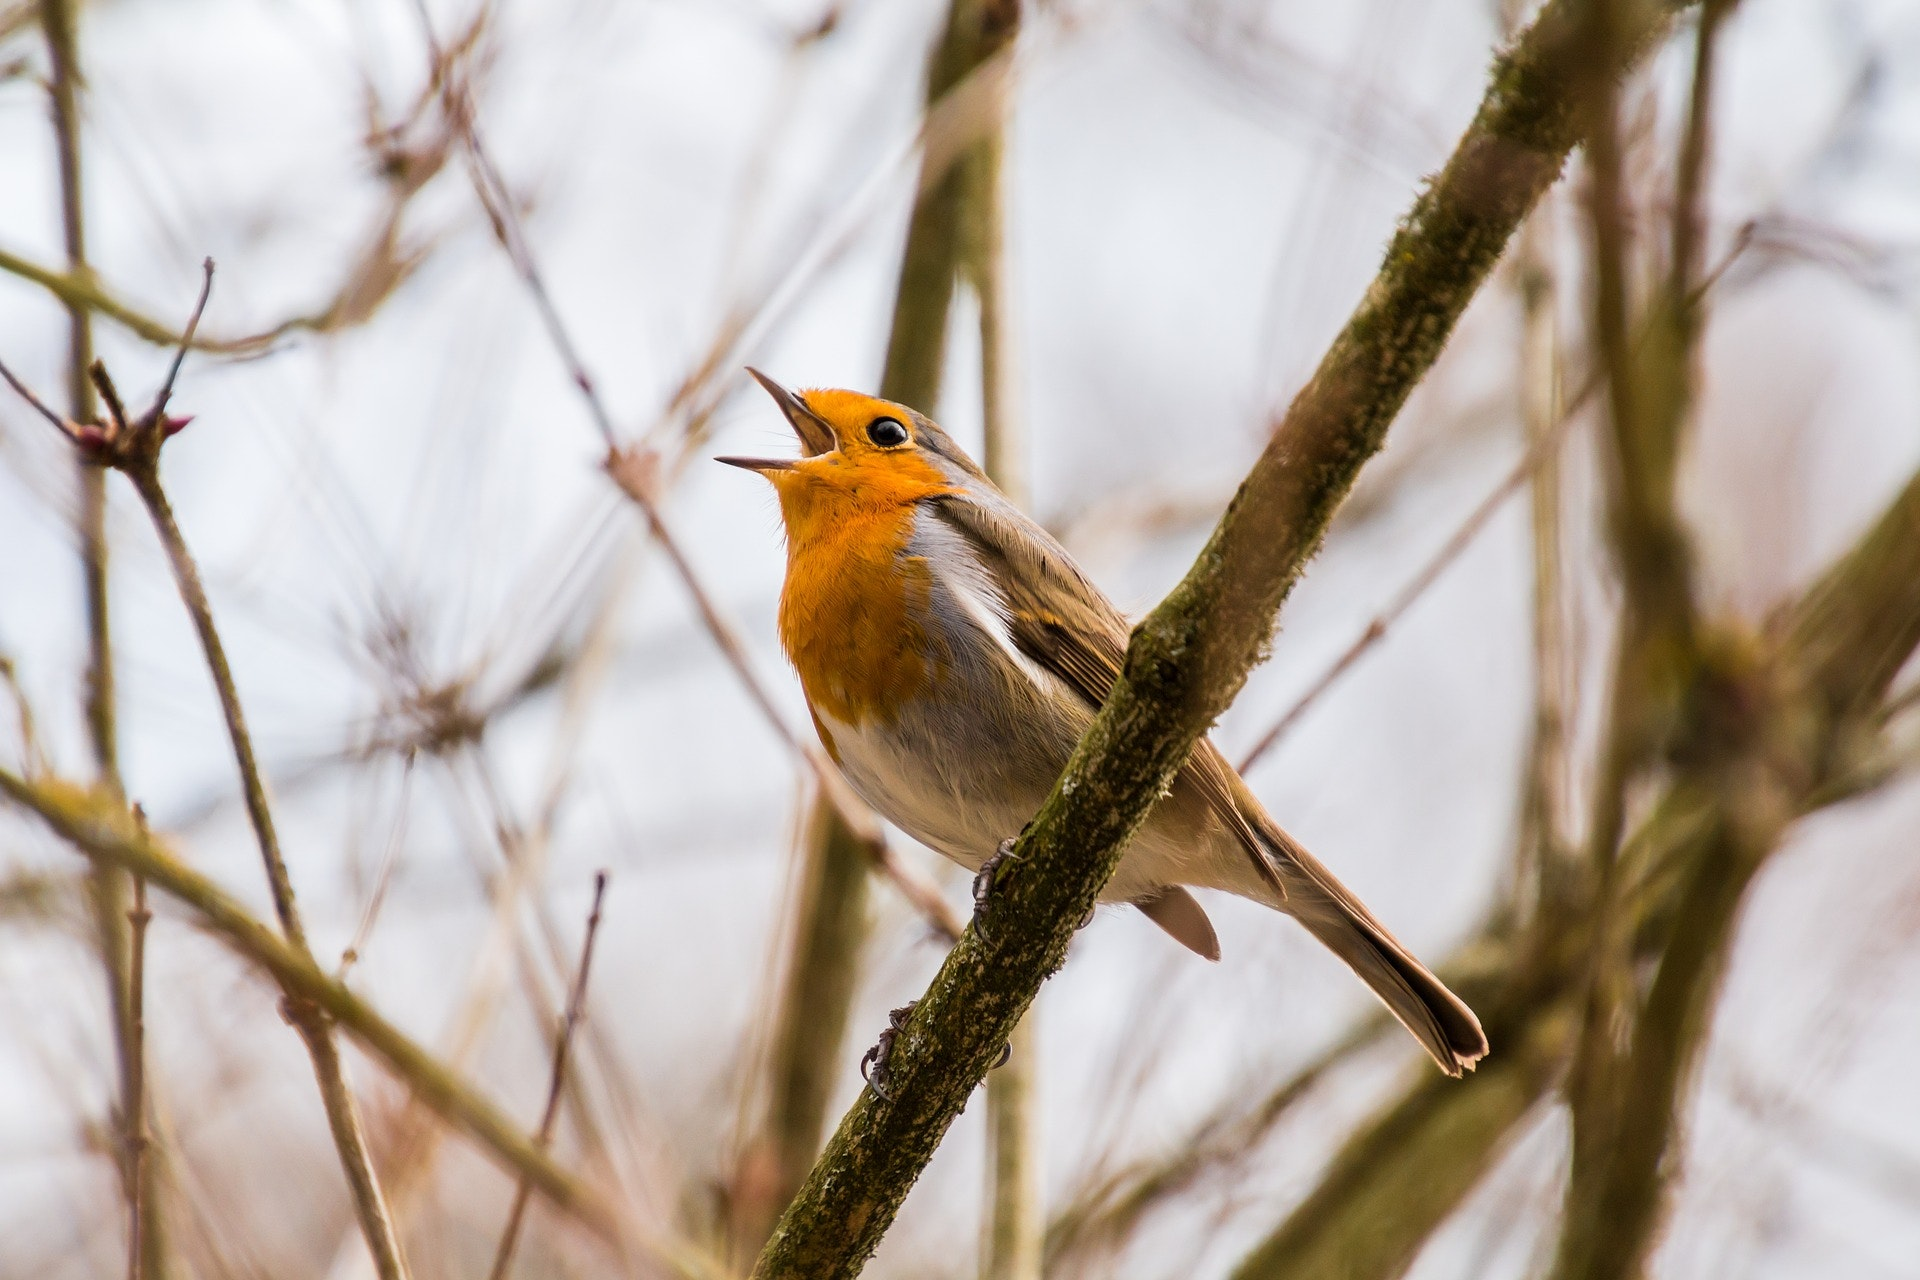 New Study Upends a Common Conception About a Bird's Song